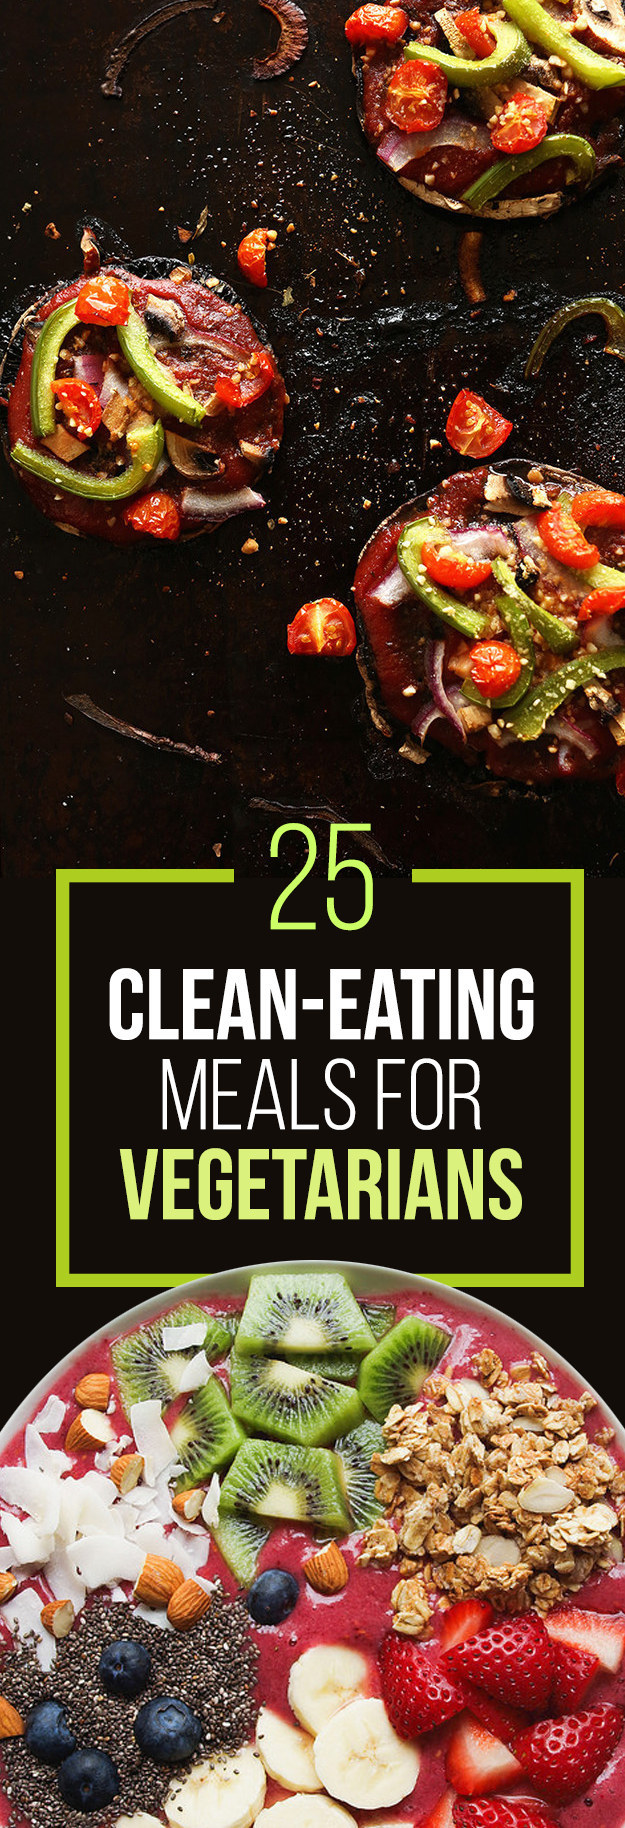 25 clean eating meals for vegetarians pharmacypedia